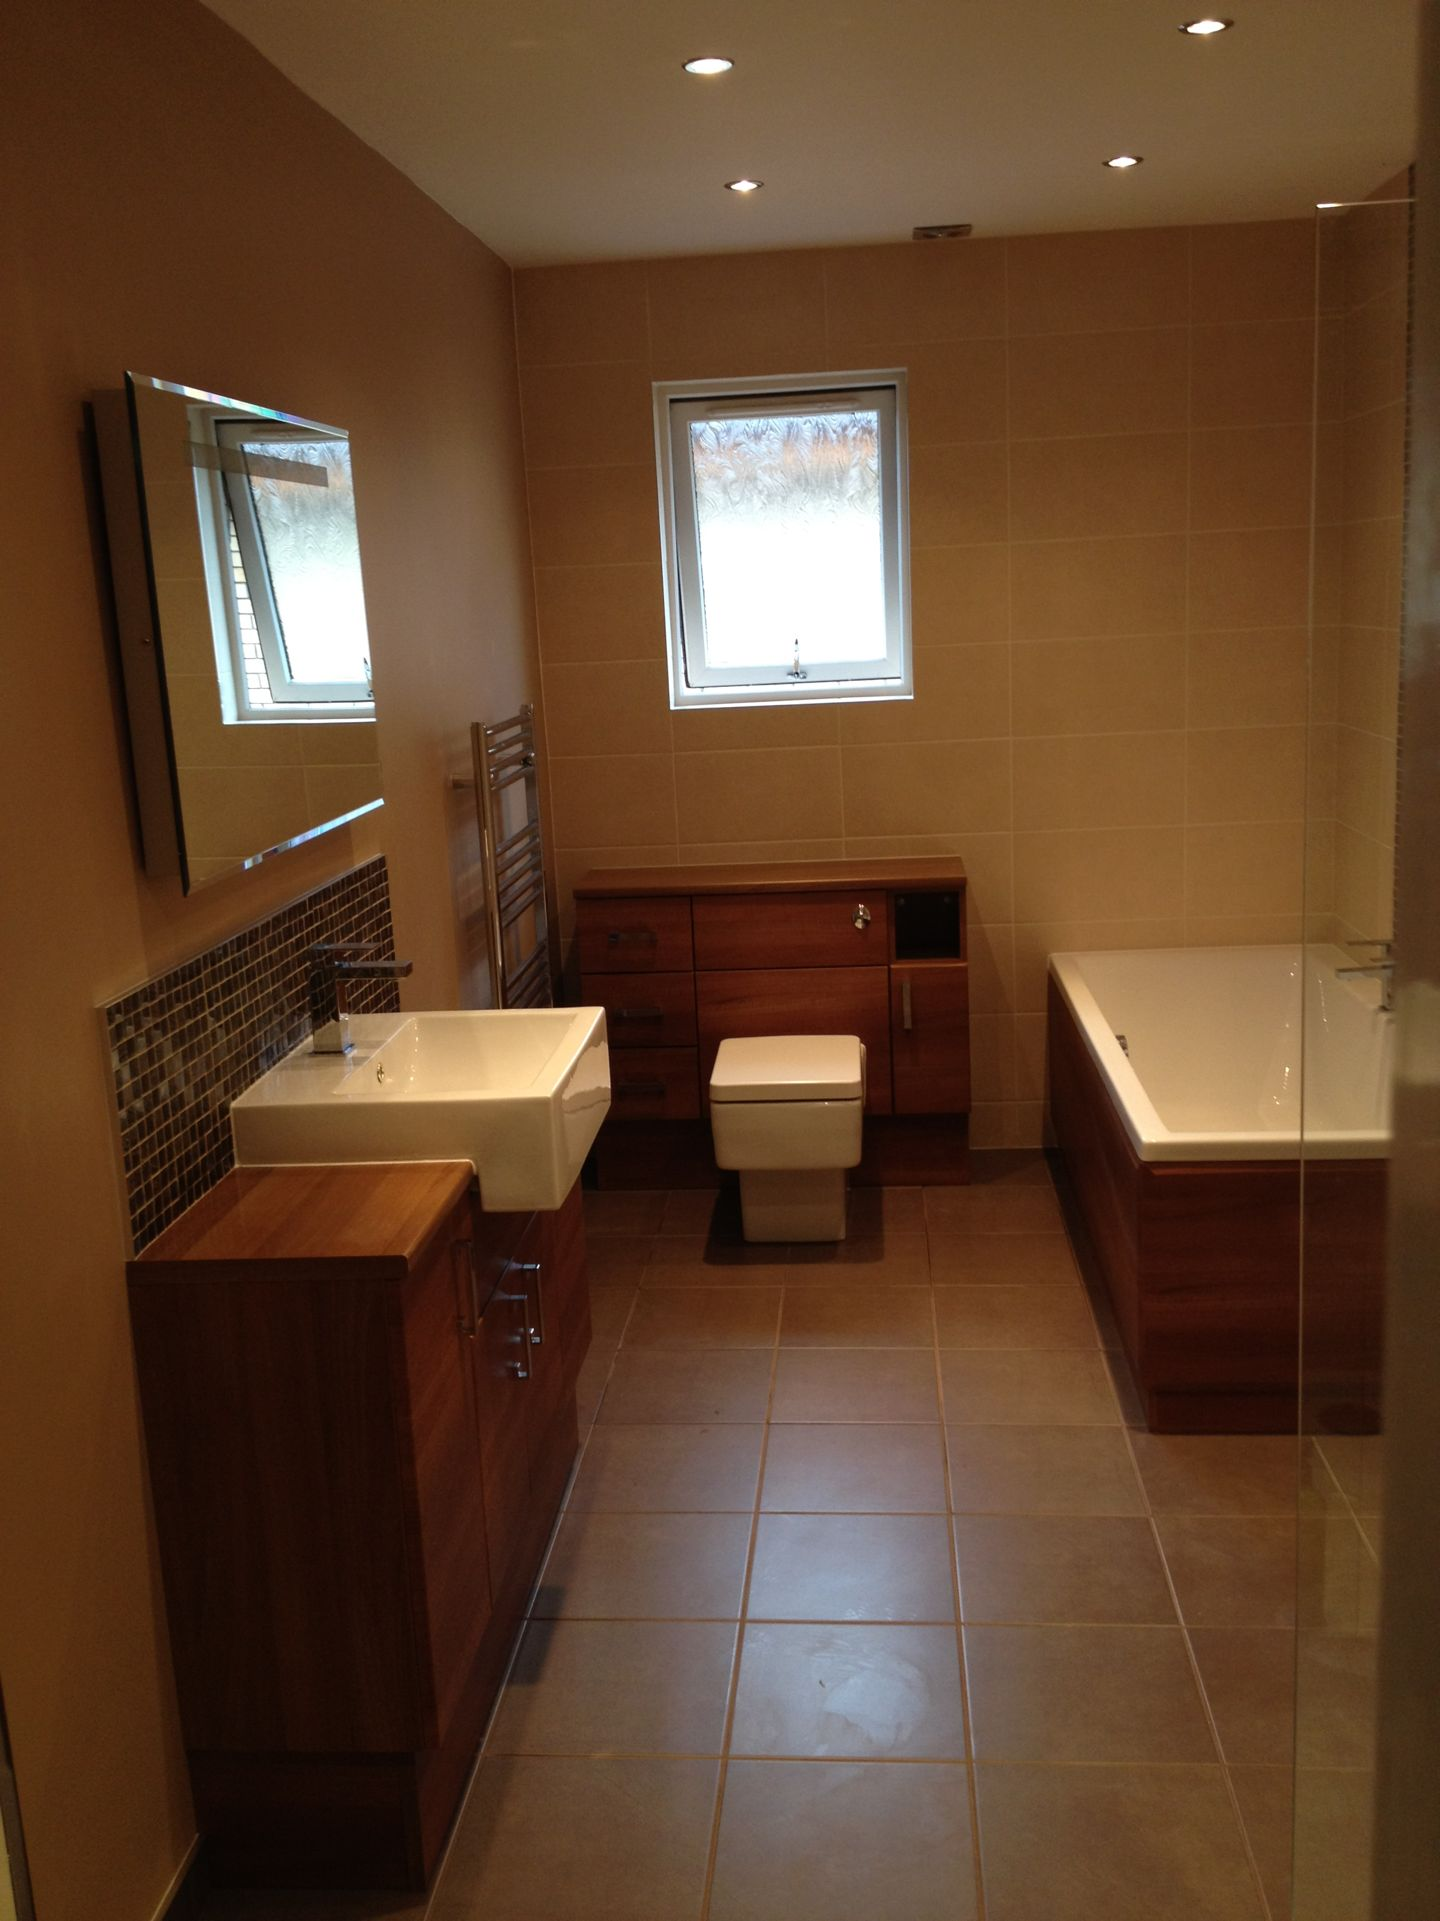 Bathroom Lighting Glasgow before and after photos - glasgow bathroom design & installation